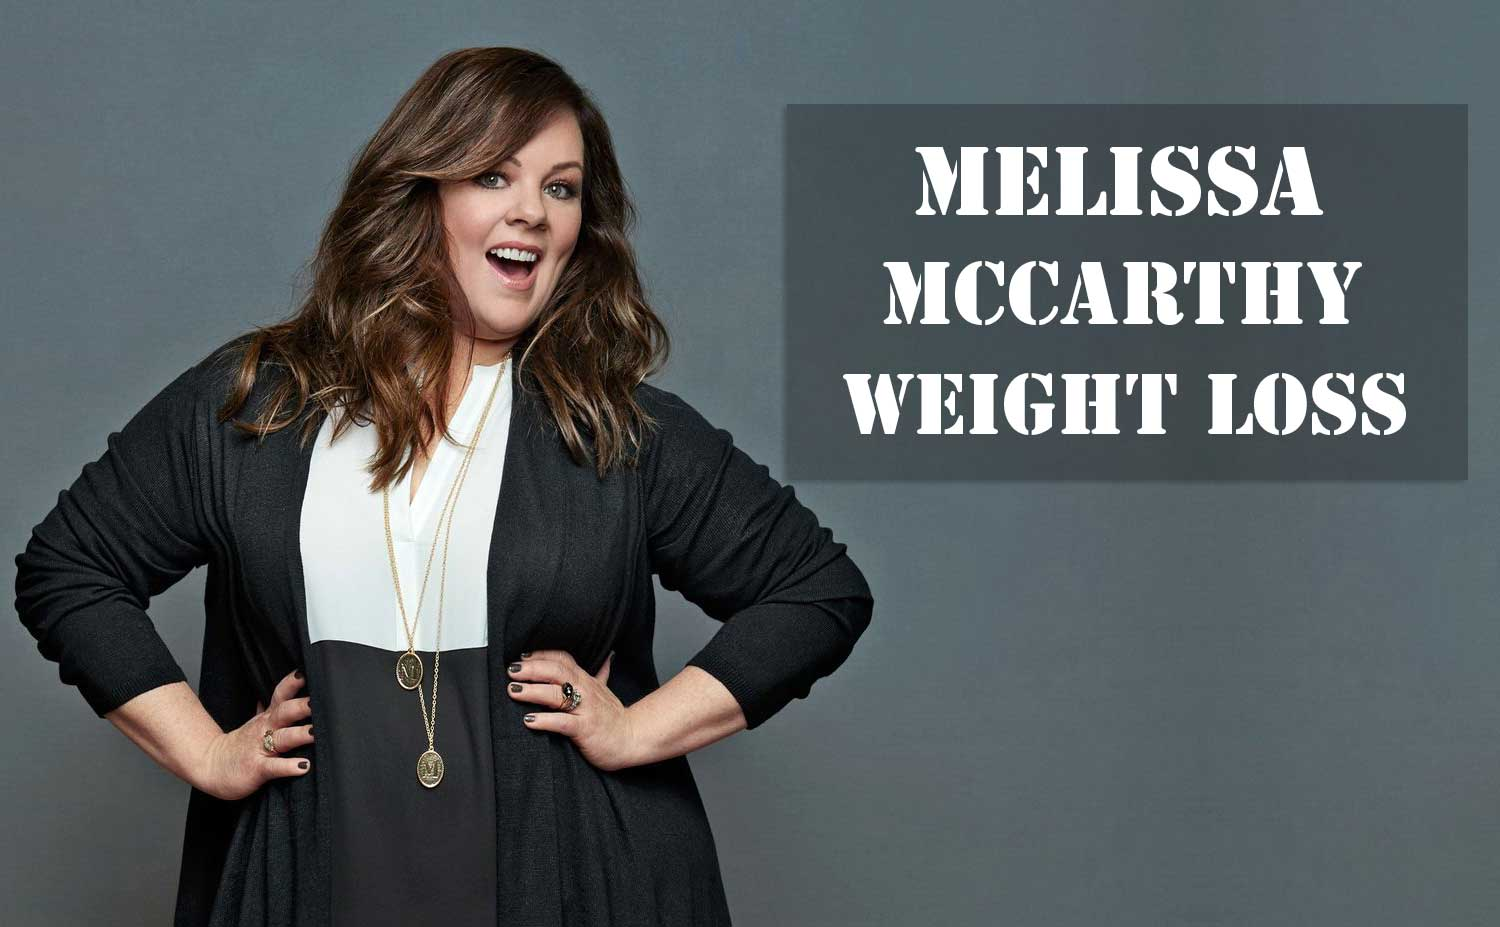 Secret Behind Melissa Mccarthy Weight Loss - HealhICU